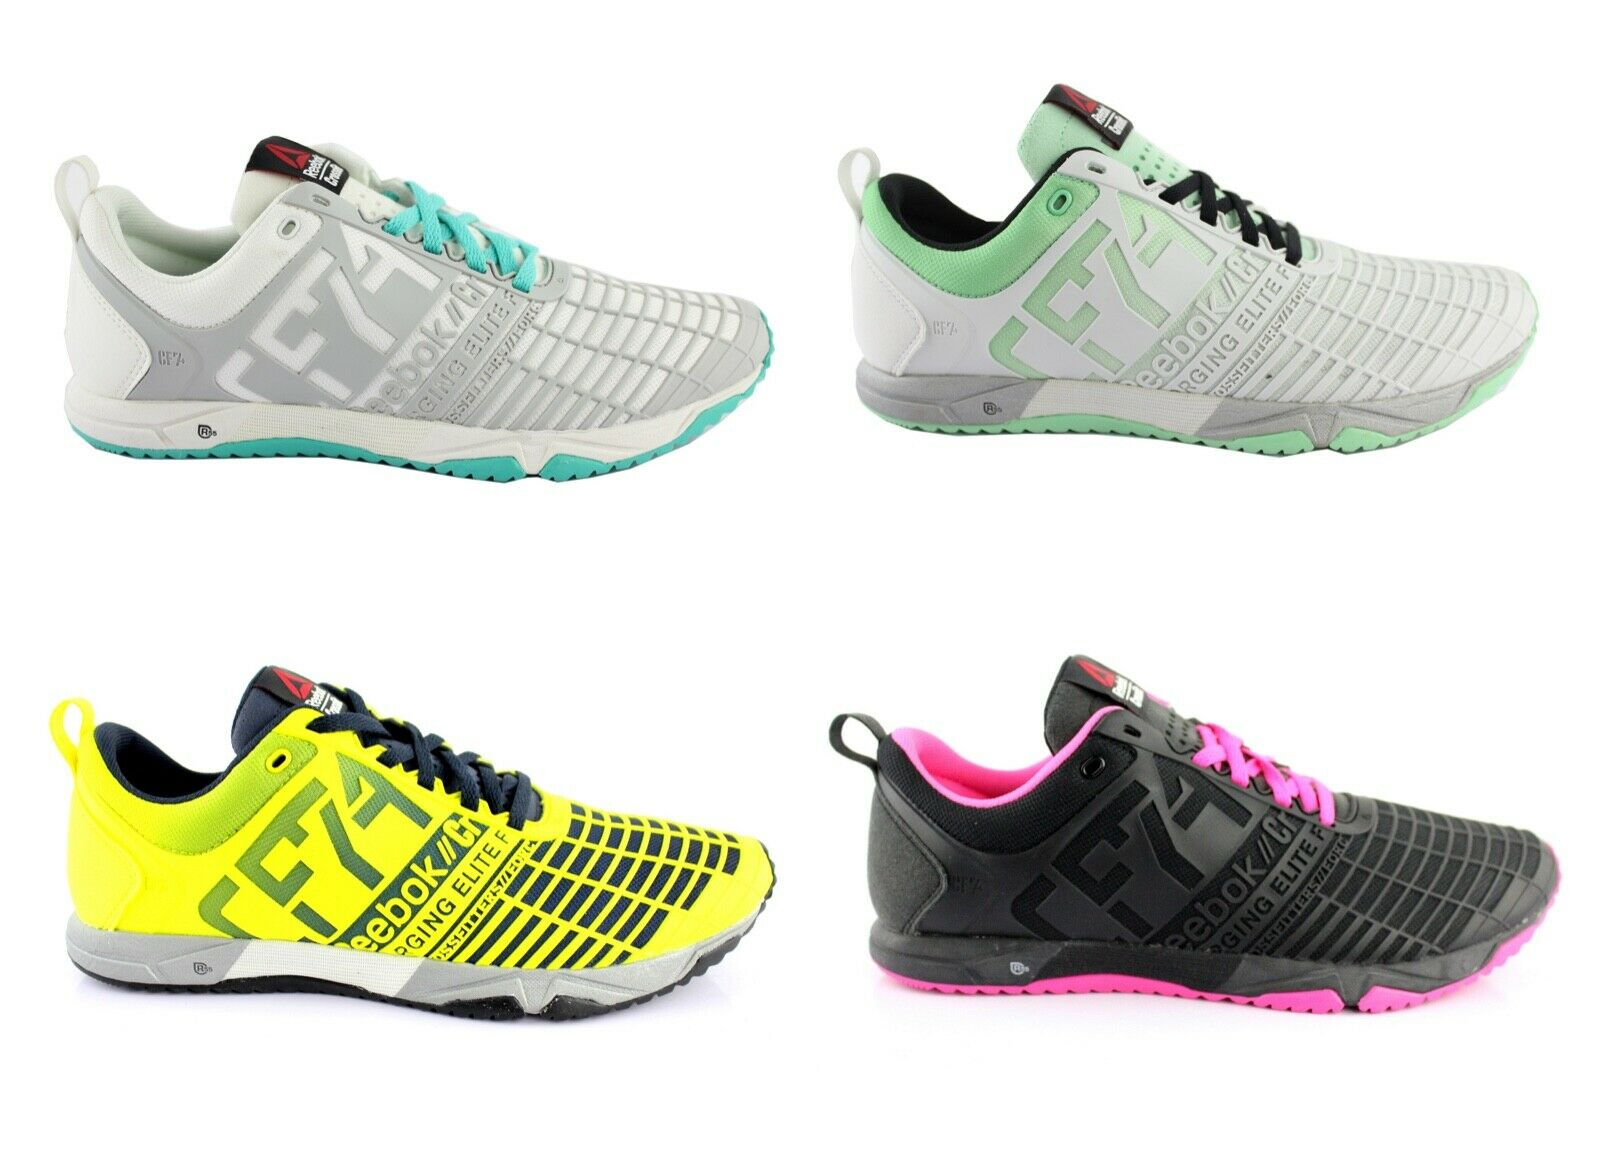 Reebok Crossfit Sprint Tr Training shoes Ladies Fitness Running shoes  shoes Gym  free shipping on all orders